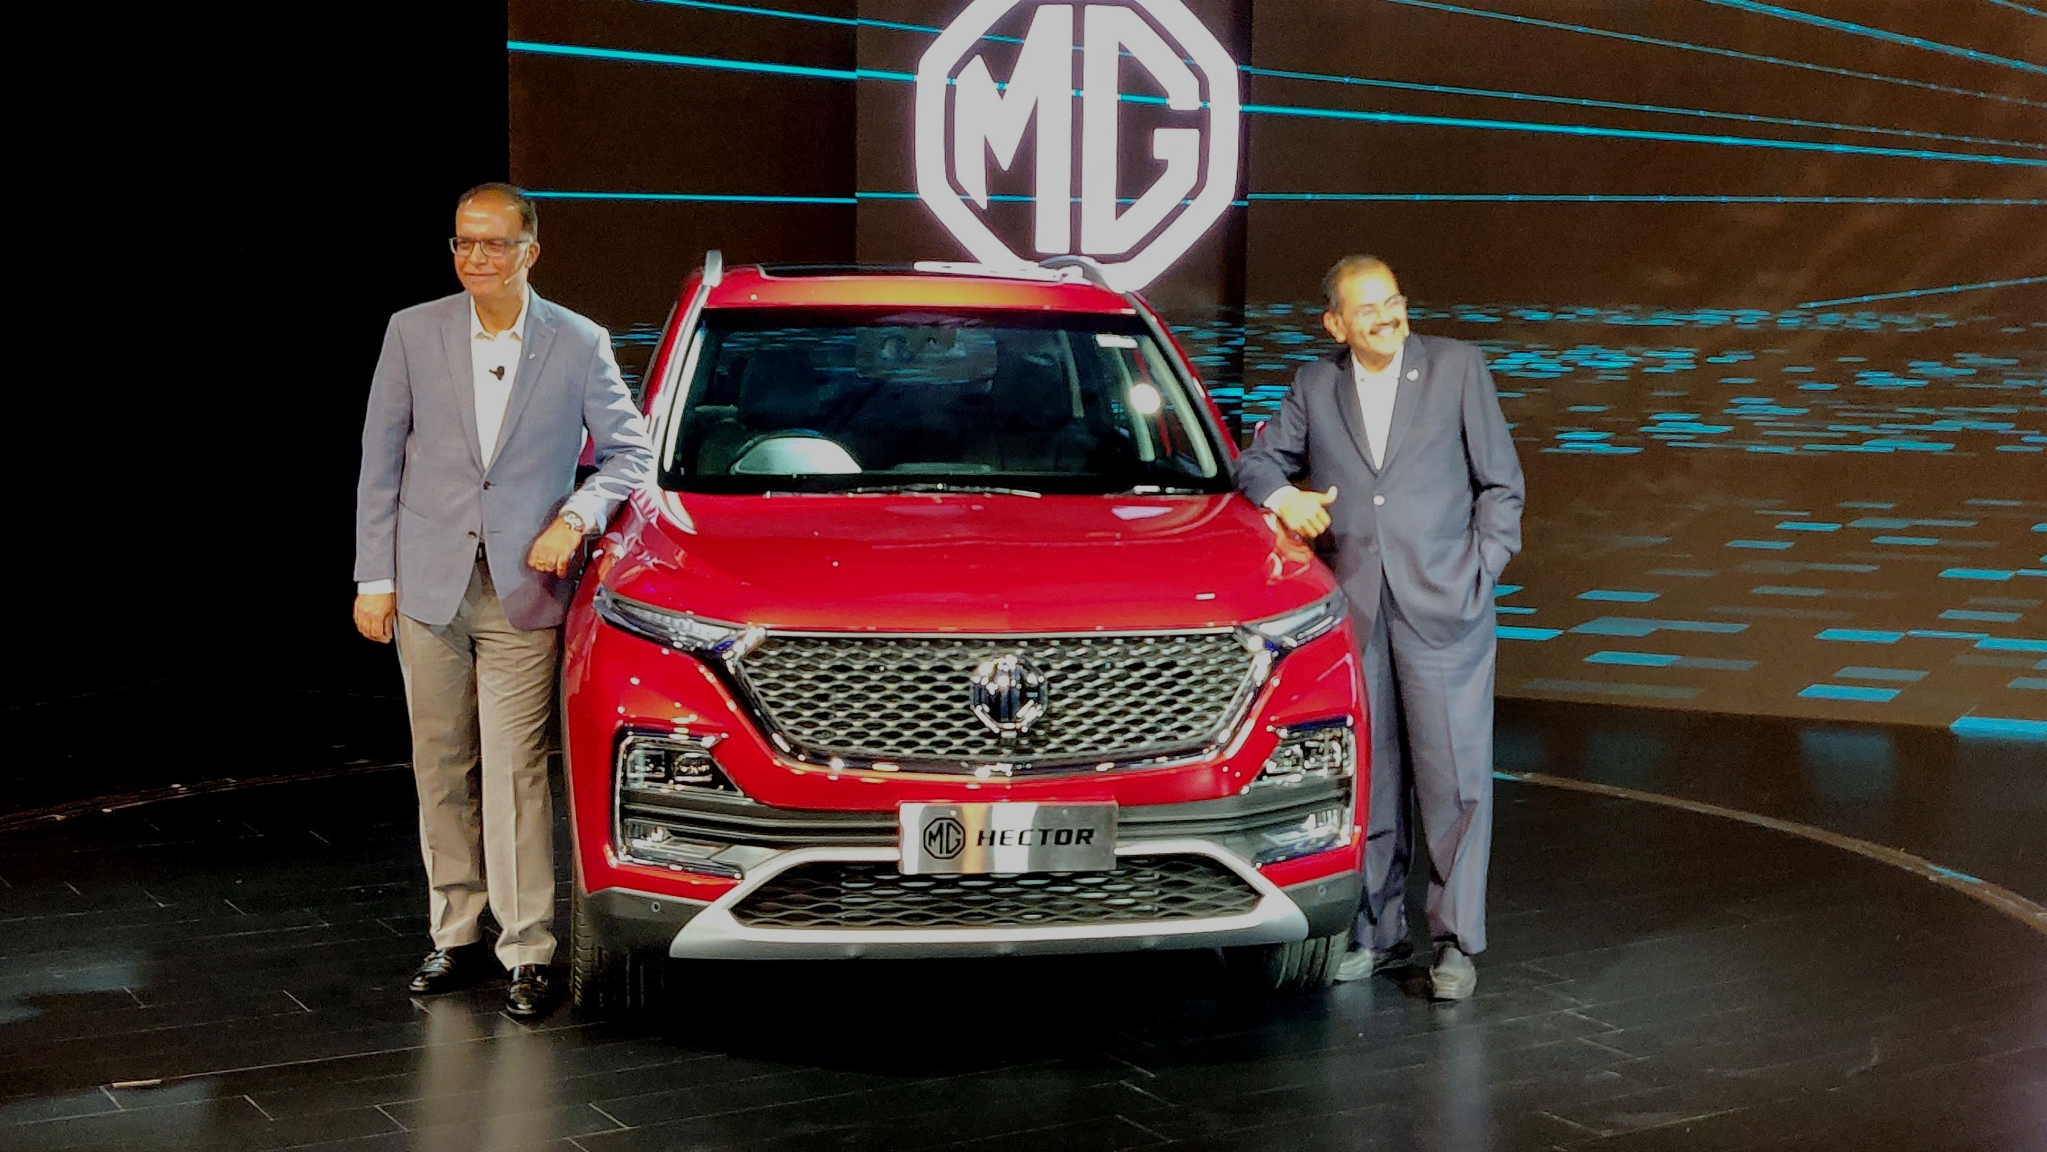 MG Hector SUV Officially Unveiled in India, Comes in Four Variants